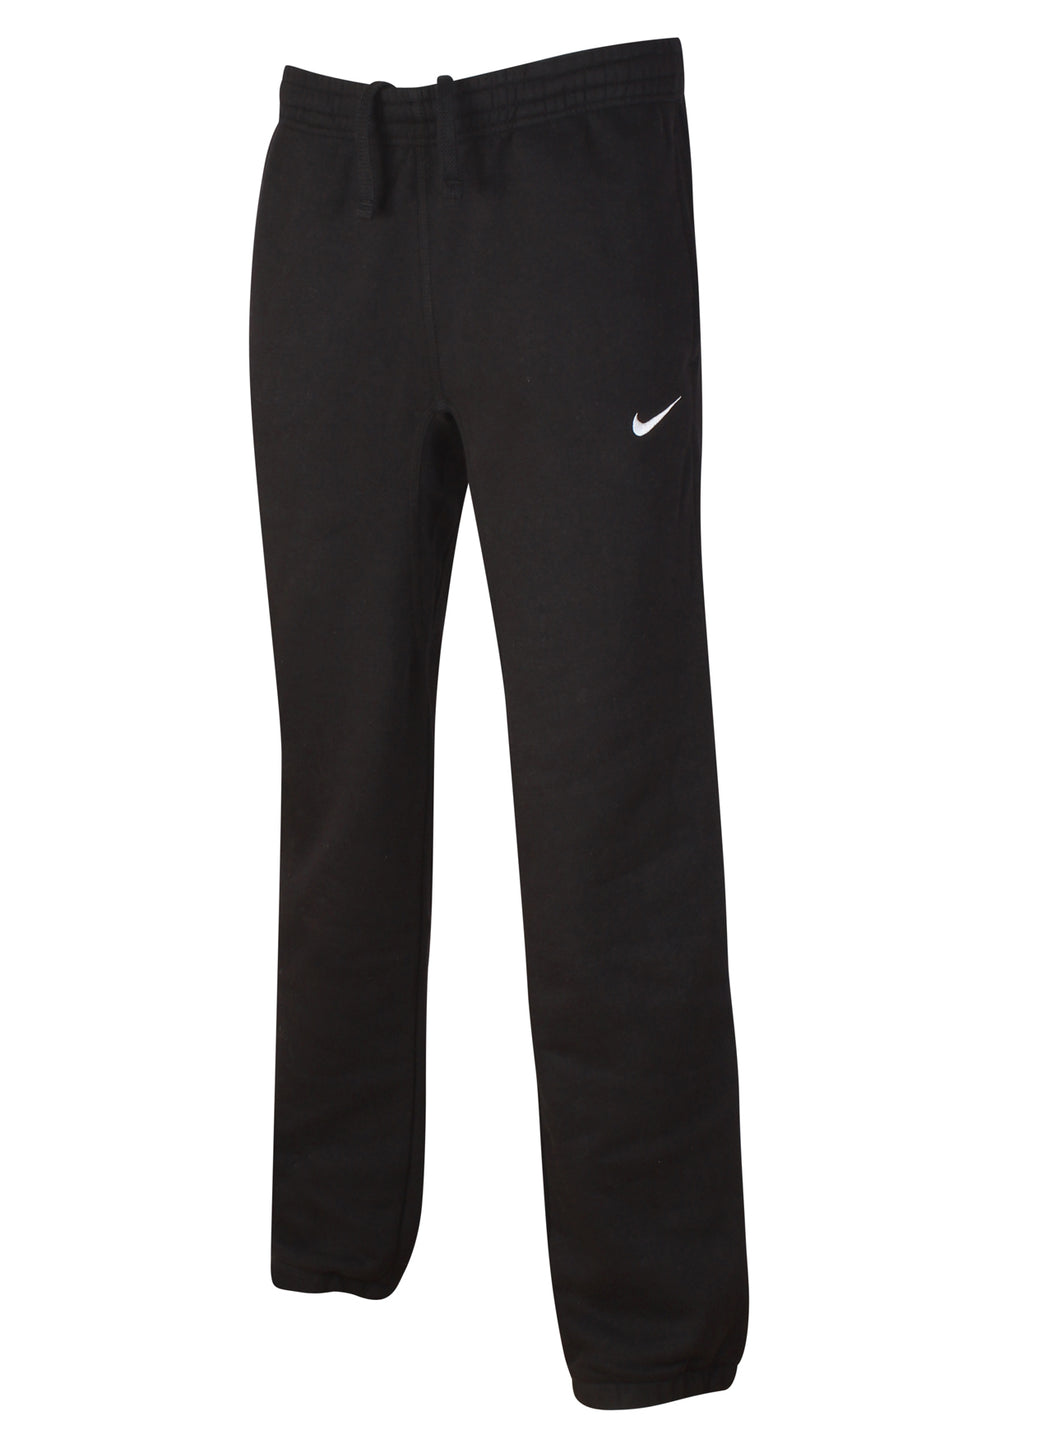 Nike Men's Club Black Fleece Tracksuit Bottoms